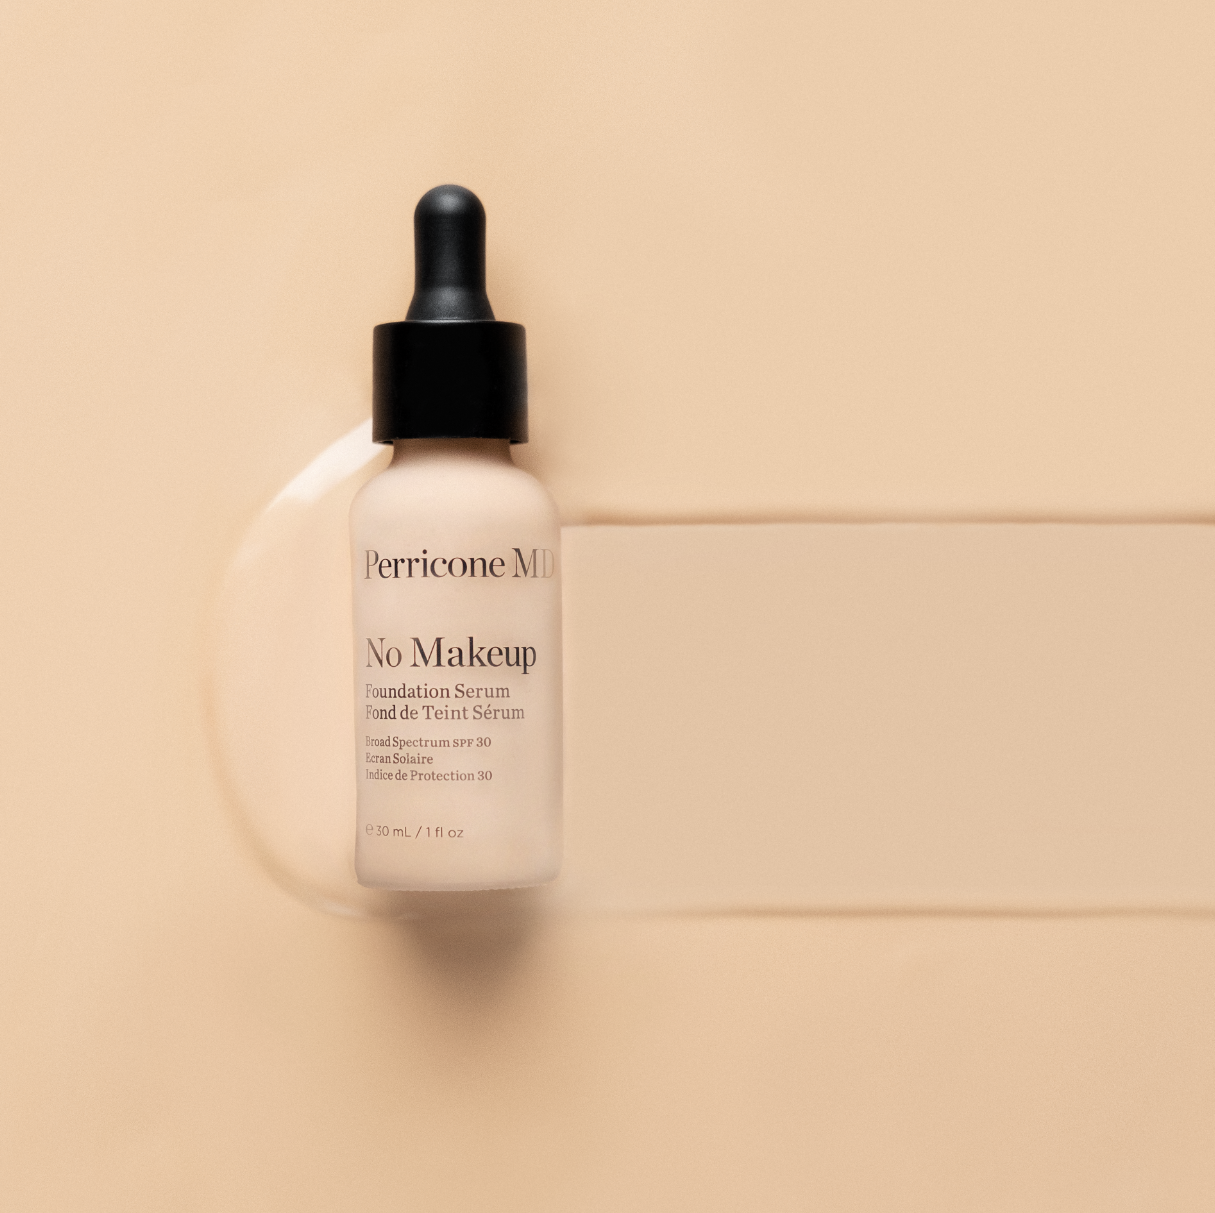 Perricone MD's best selling No Makeup Foundation Serum is